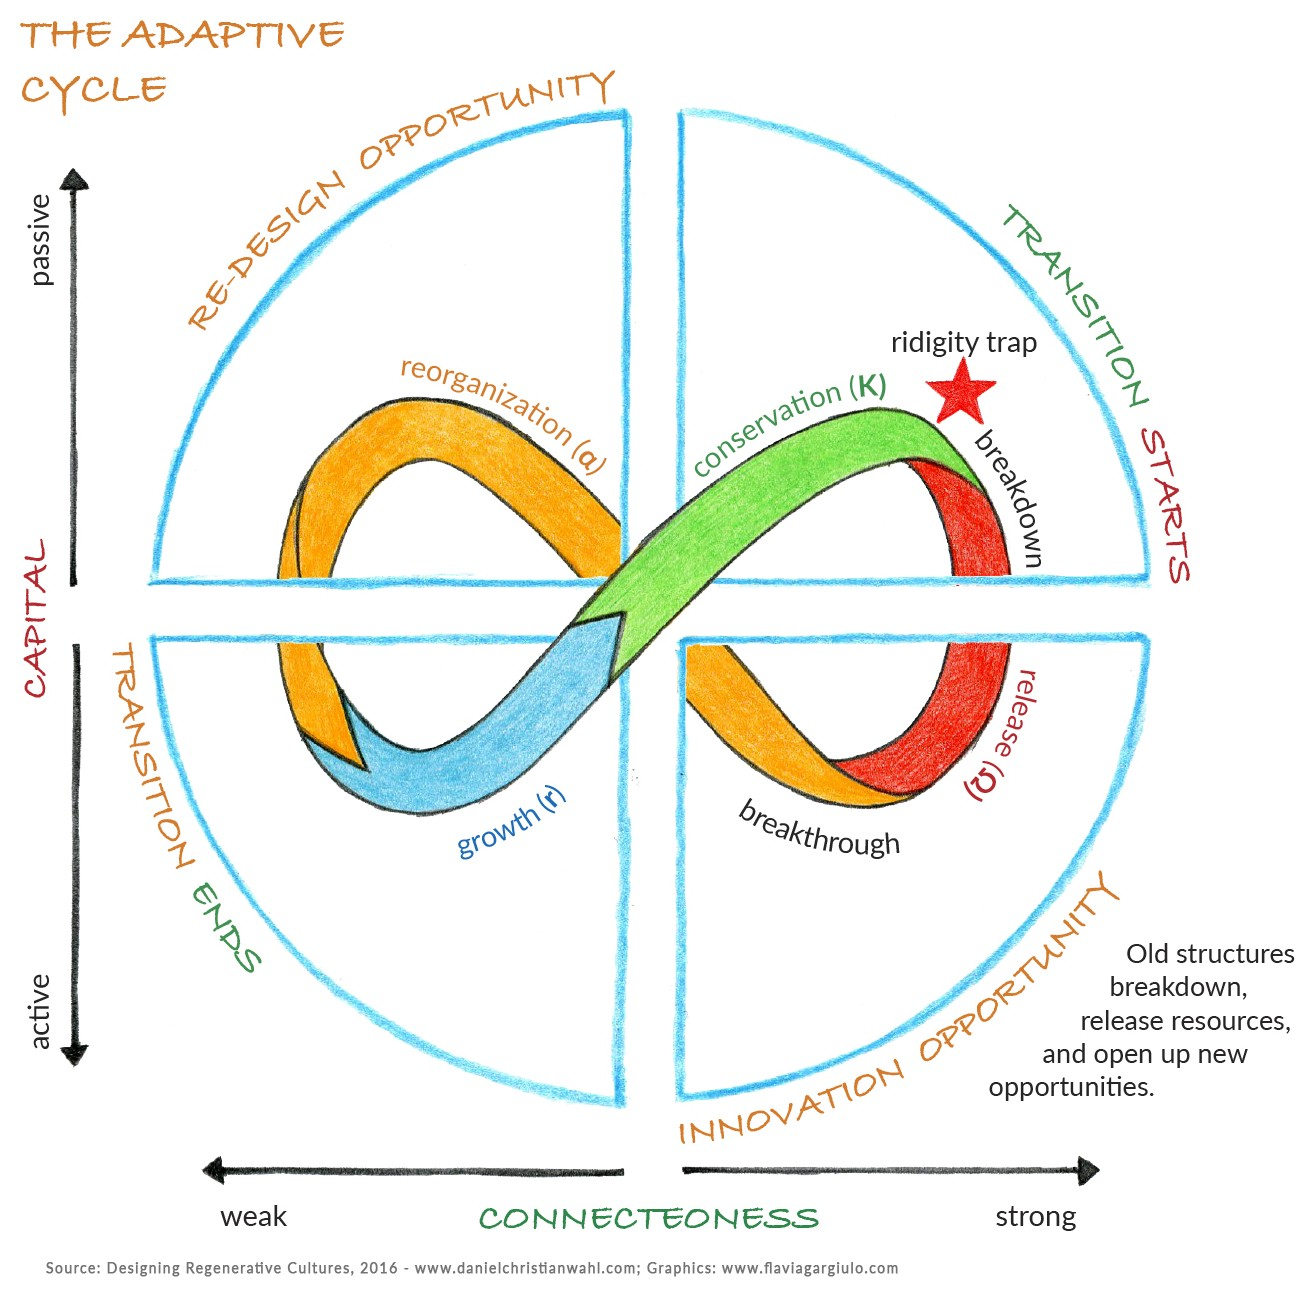 /the-adaptive-cycle-panarchy-as-dynamic-maps-for-resilience-thinking-793fad49de5e feature image